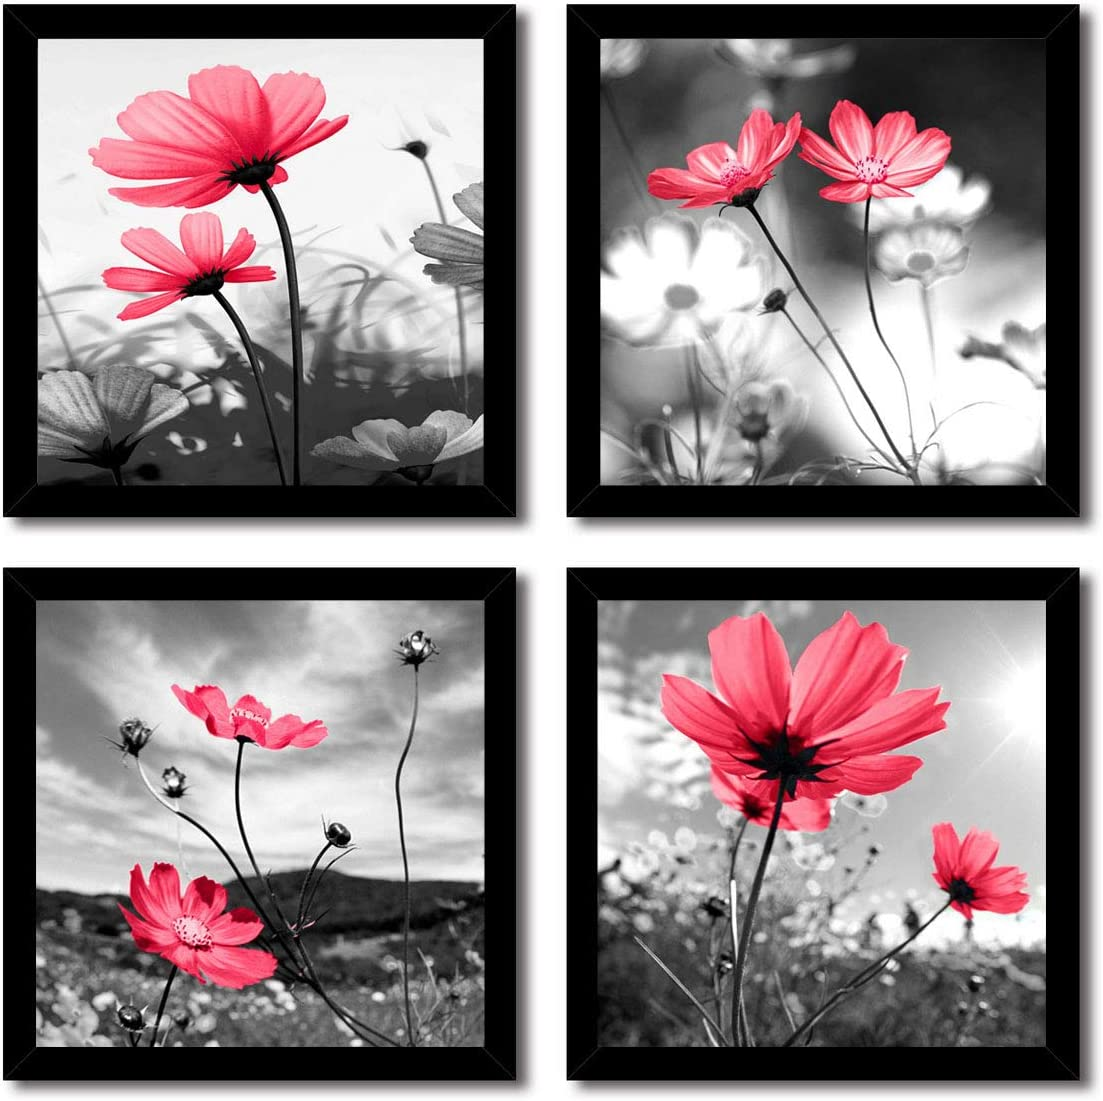 HLJ ART Modern Salon Theme Black and White Peacock Blue Vase Flower Abstract Painting Still Life Canvas Wall Art for Home Decor 12x12inches 4pcs/Set (Red, 12x12inchx4pcs)